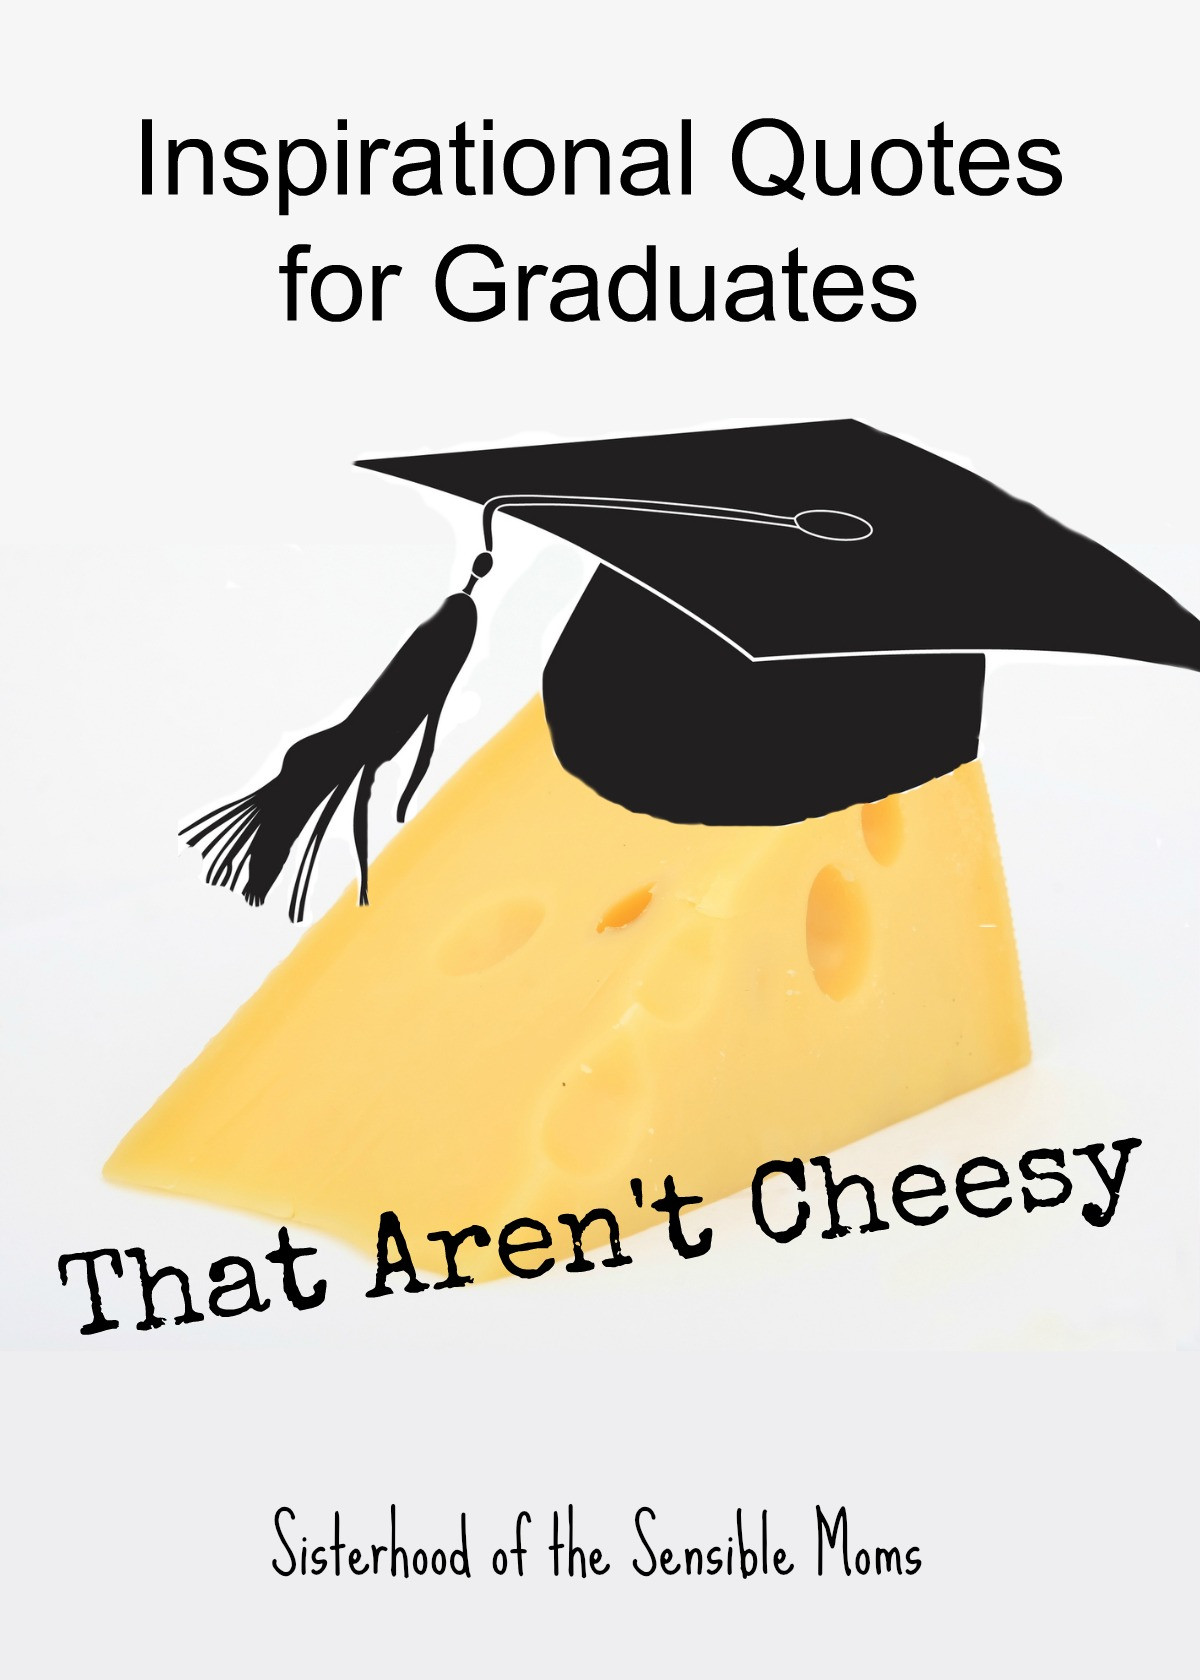 Inspirational Graduation Quotes  Inspirational Quotes for Graduates That Aren t Cheesy